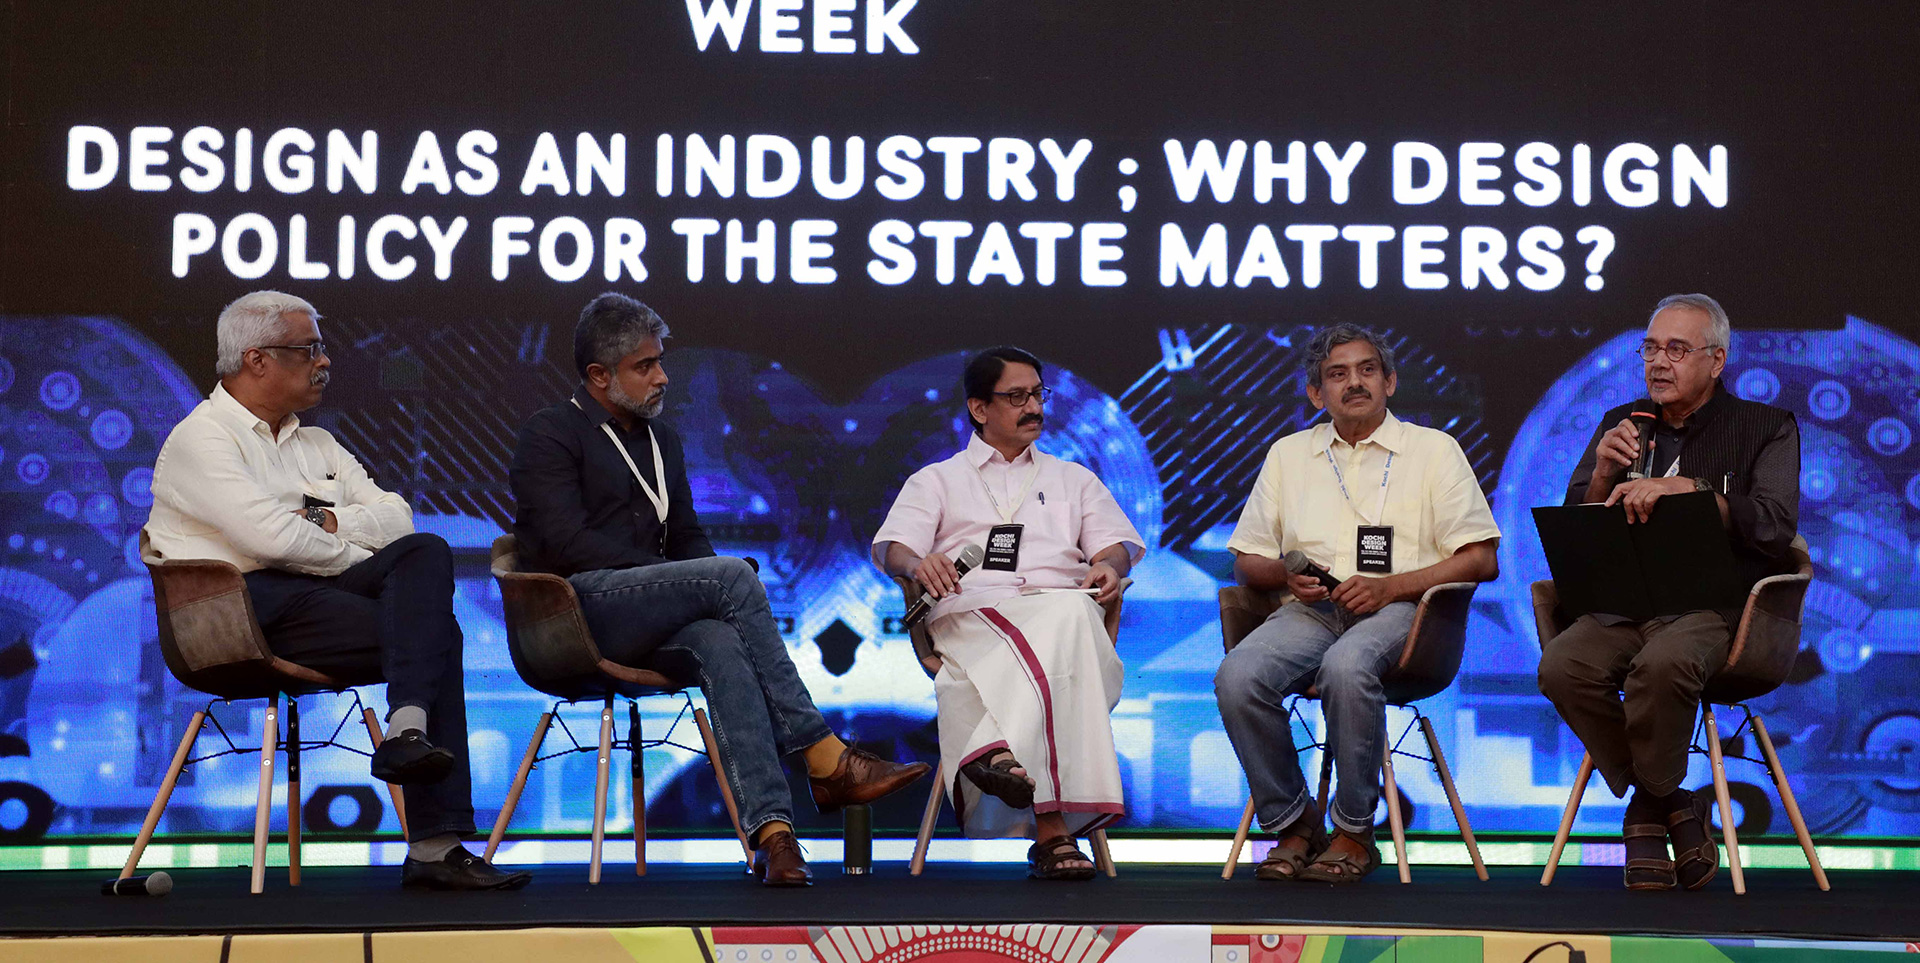 Panel Discussion on 'Design as an Industry; Why Design Policy for the State Matters?' at the Kochi Design Week 2019 | Kochi Design Week | STIRworld